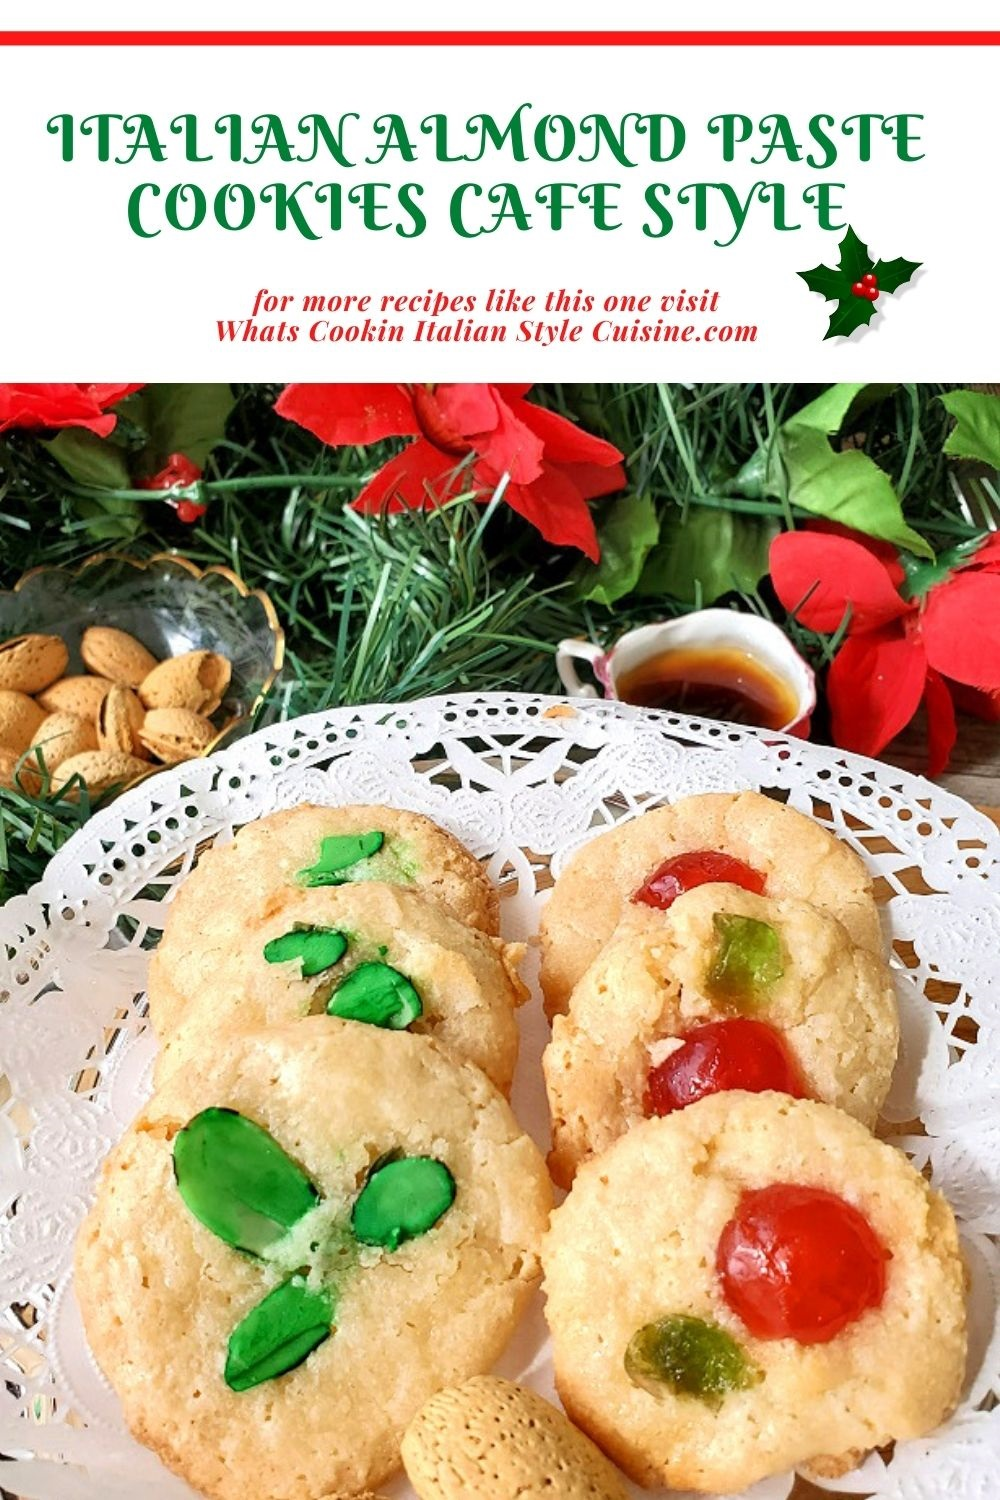 these are Italian Almond Paste cookies pin for later recipe